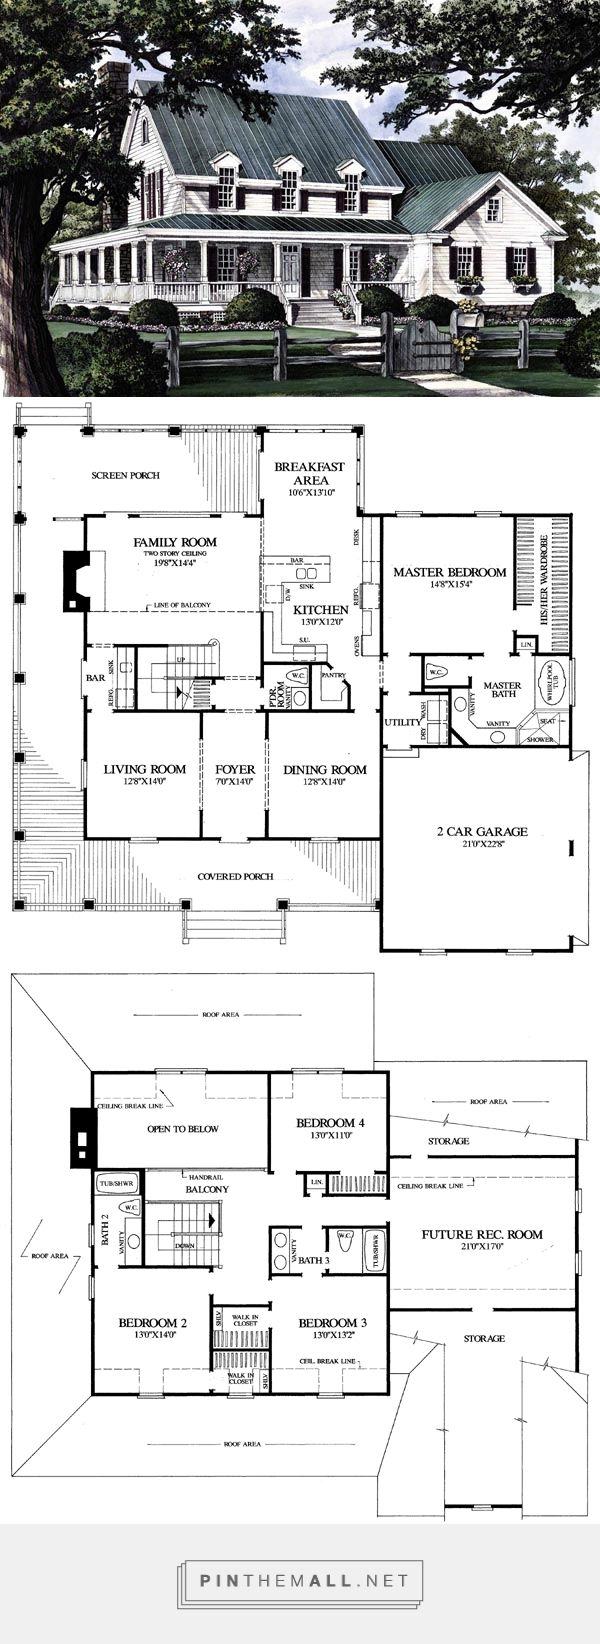 House Plan at FamilyHomePlans a grouped images picture